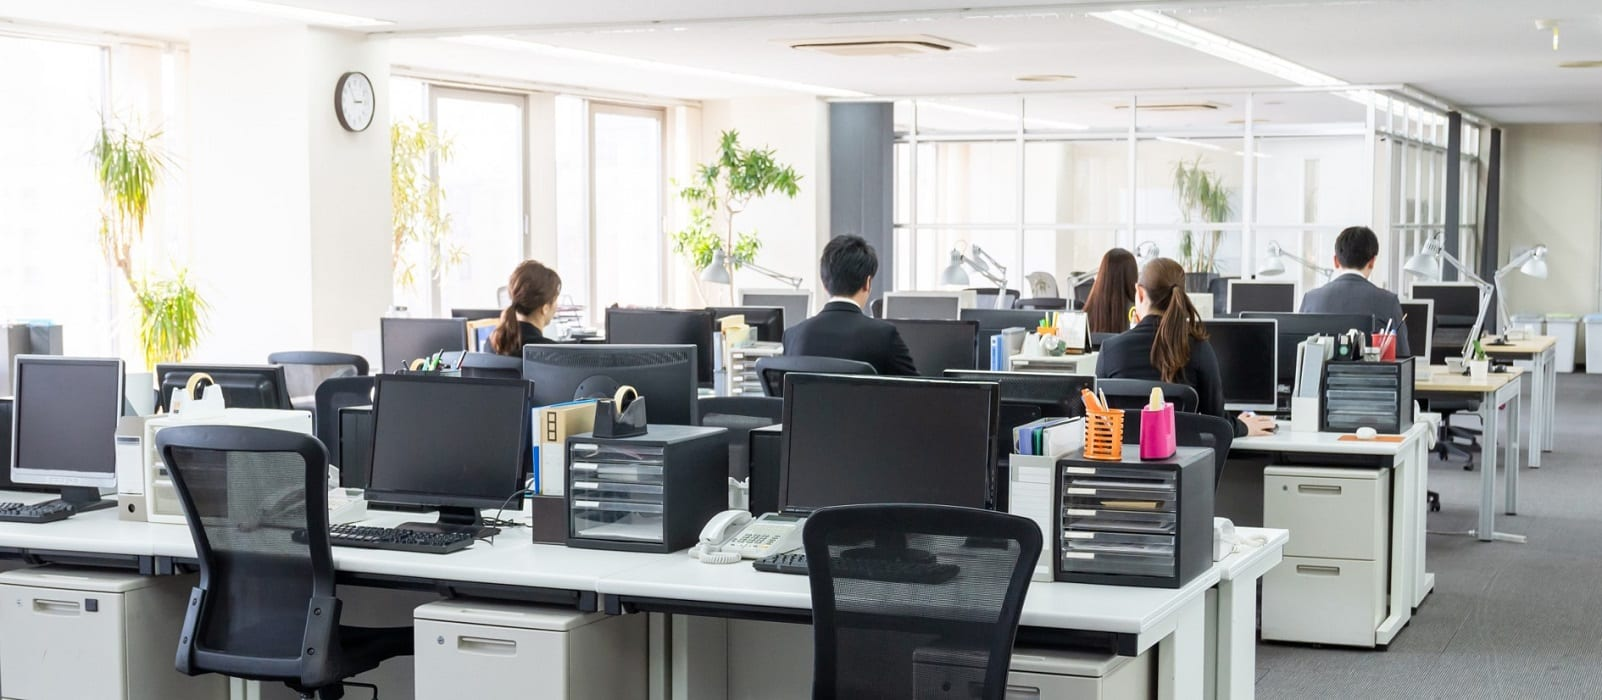 workplace - office - used for Berkley workplace violence